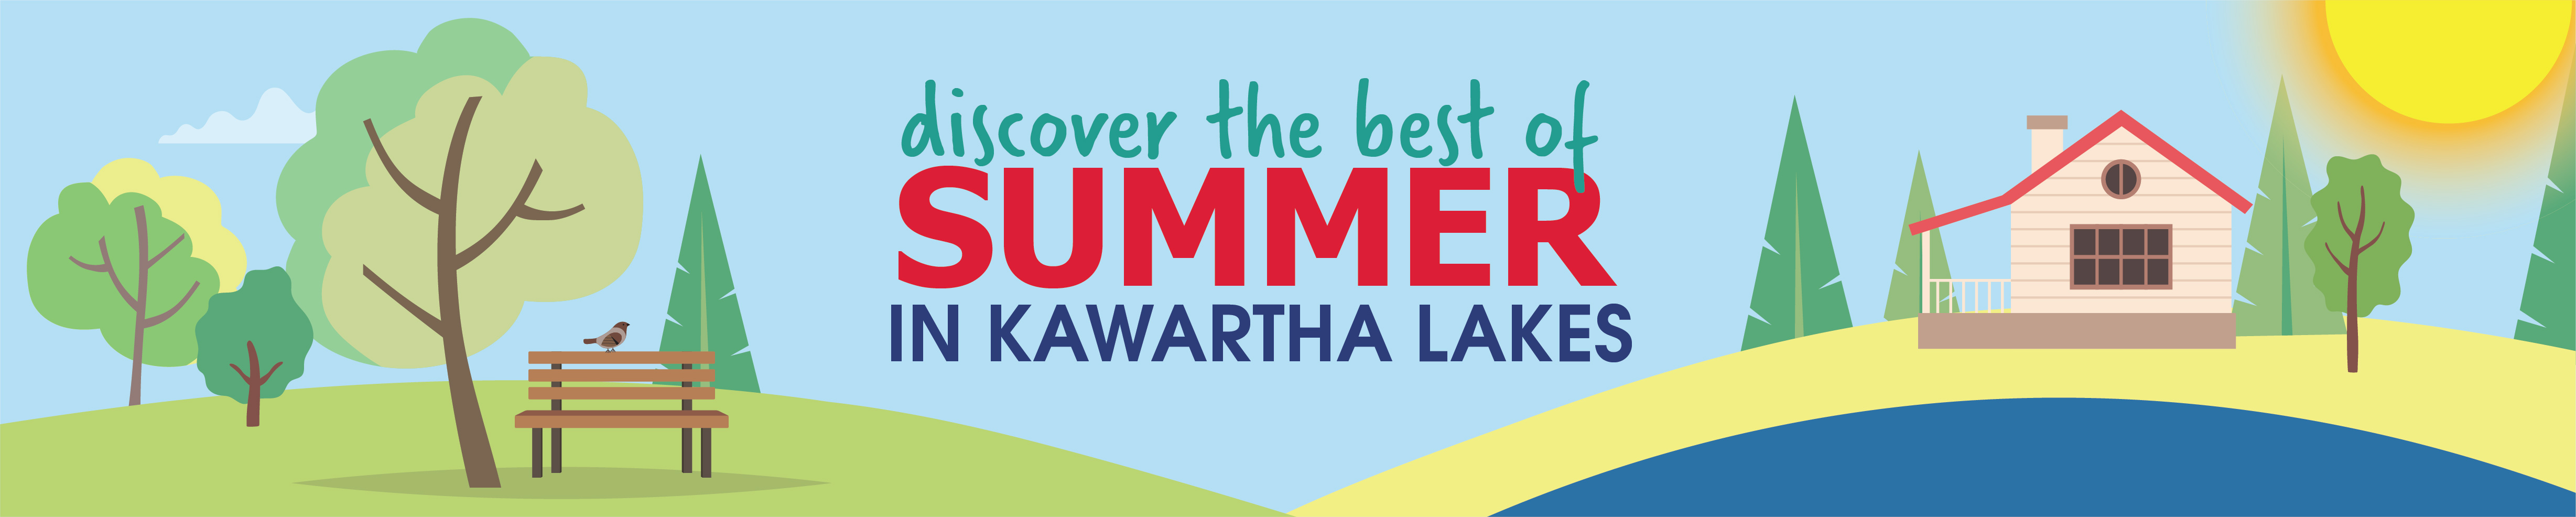 Discover the best of summer in Kawartha Lakes